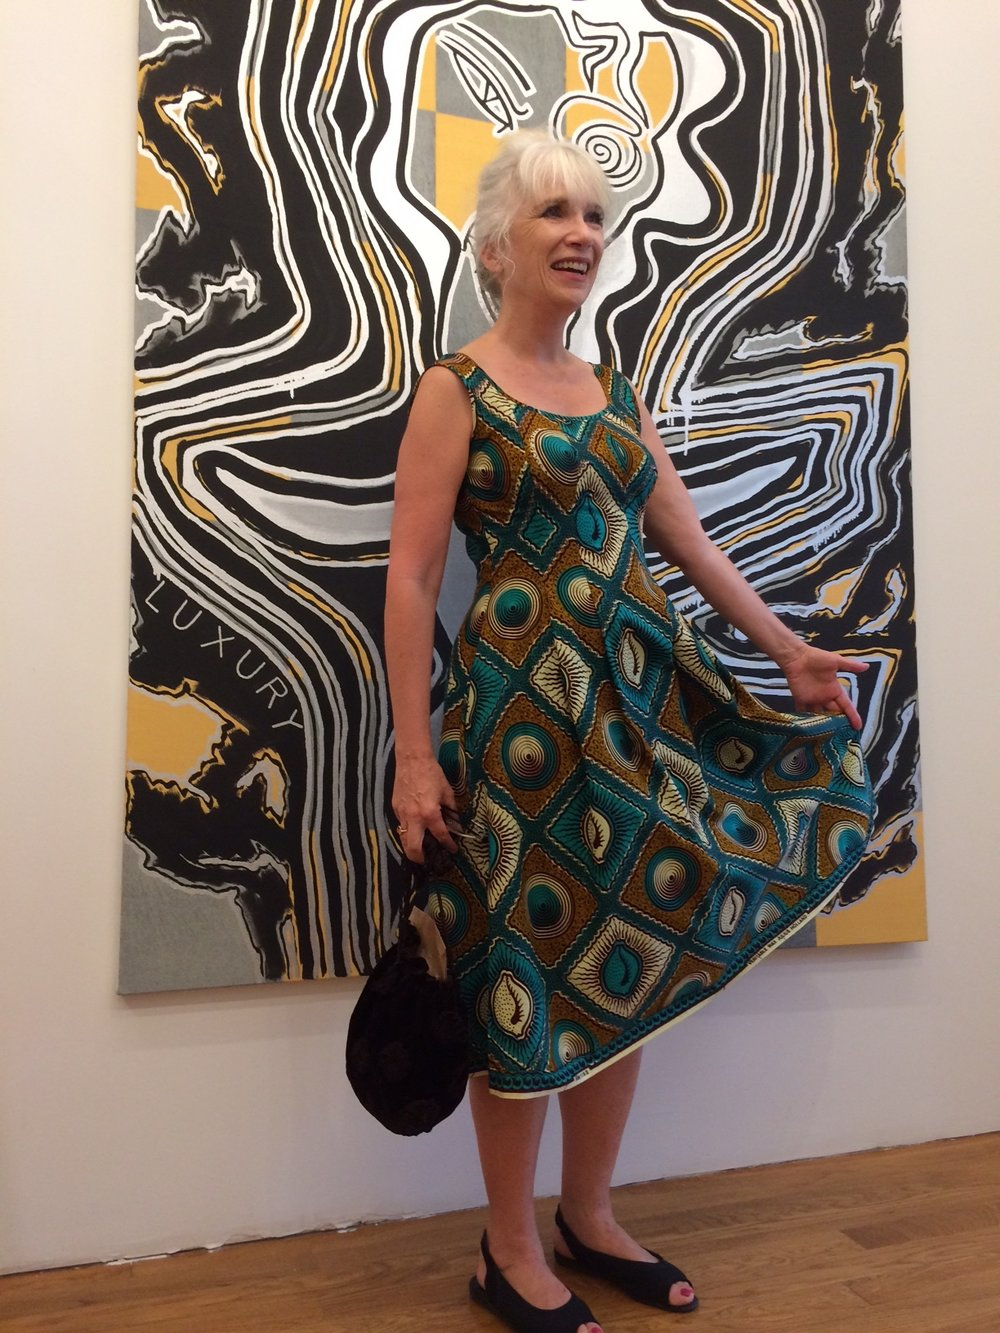 Devin Dougherty in Elizabeth Cannon Wax-print dress in front of Josh Abelow painting  photo: Taro Suzuki